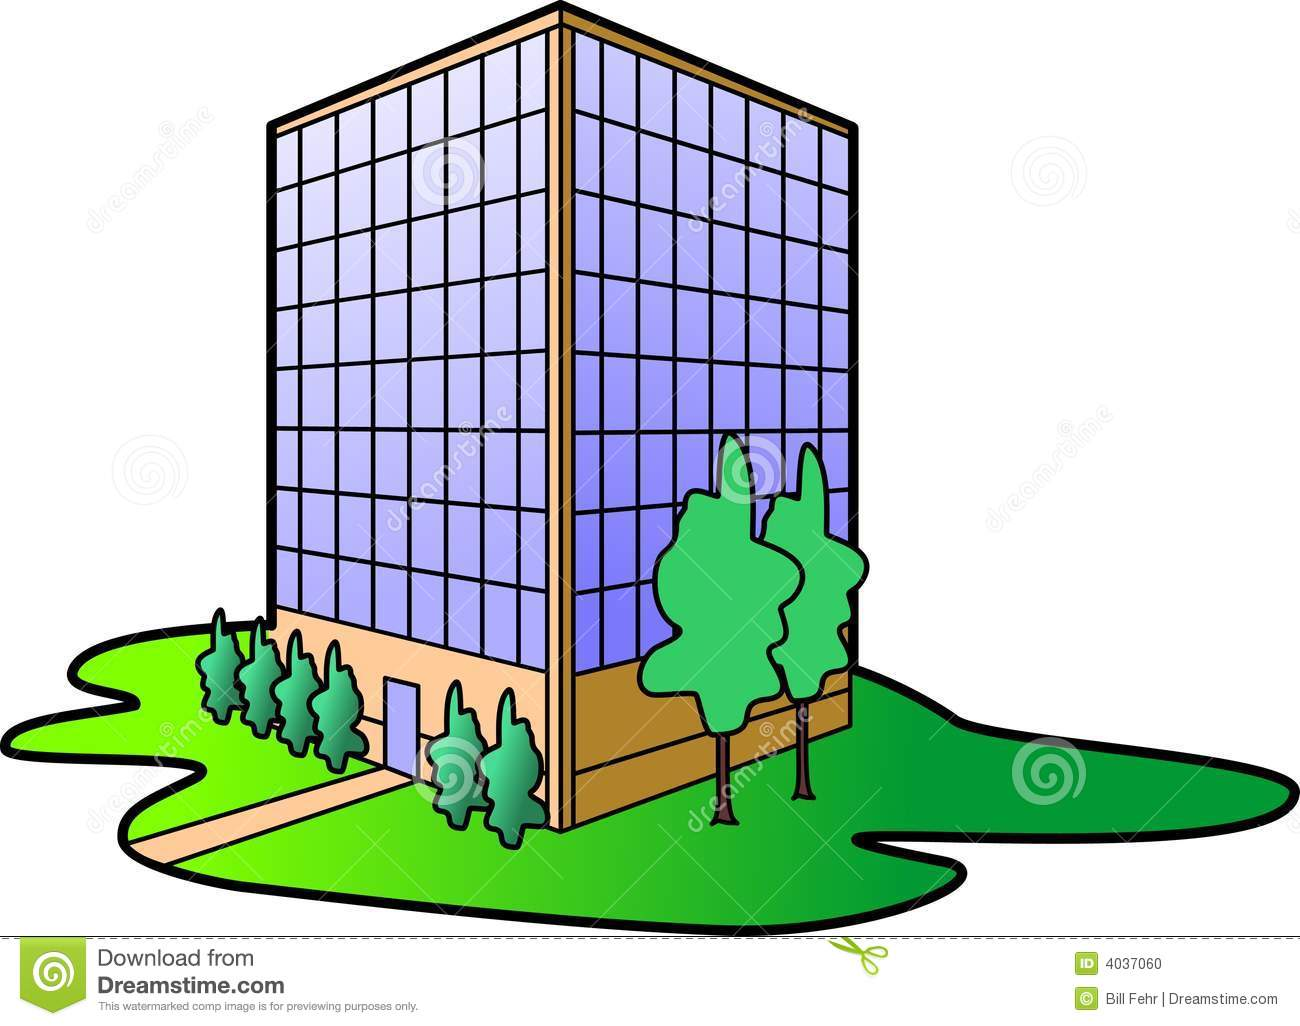 Business free download best. Building clipart corporate building